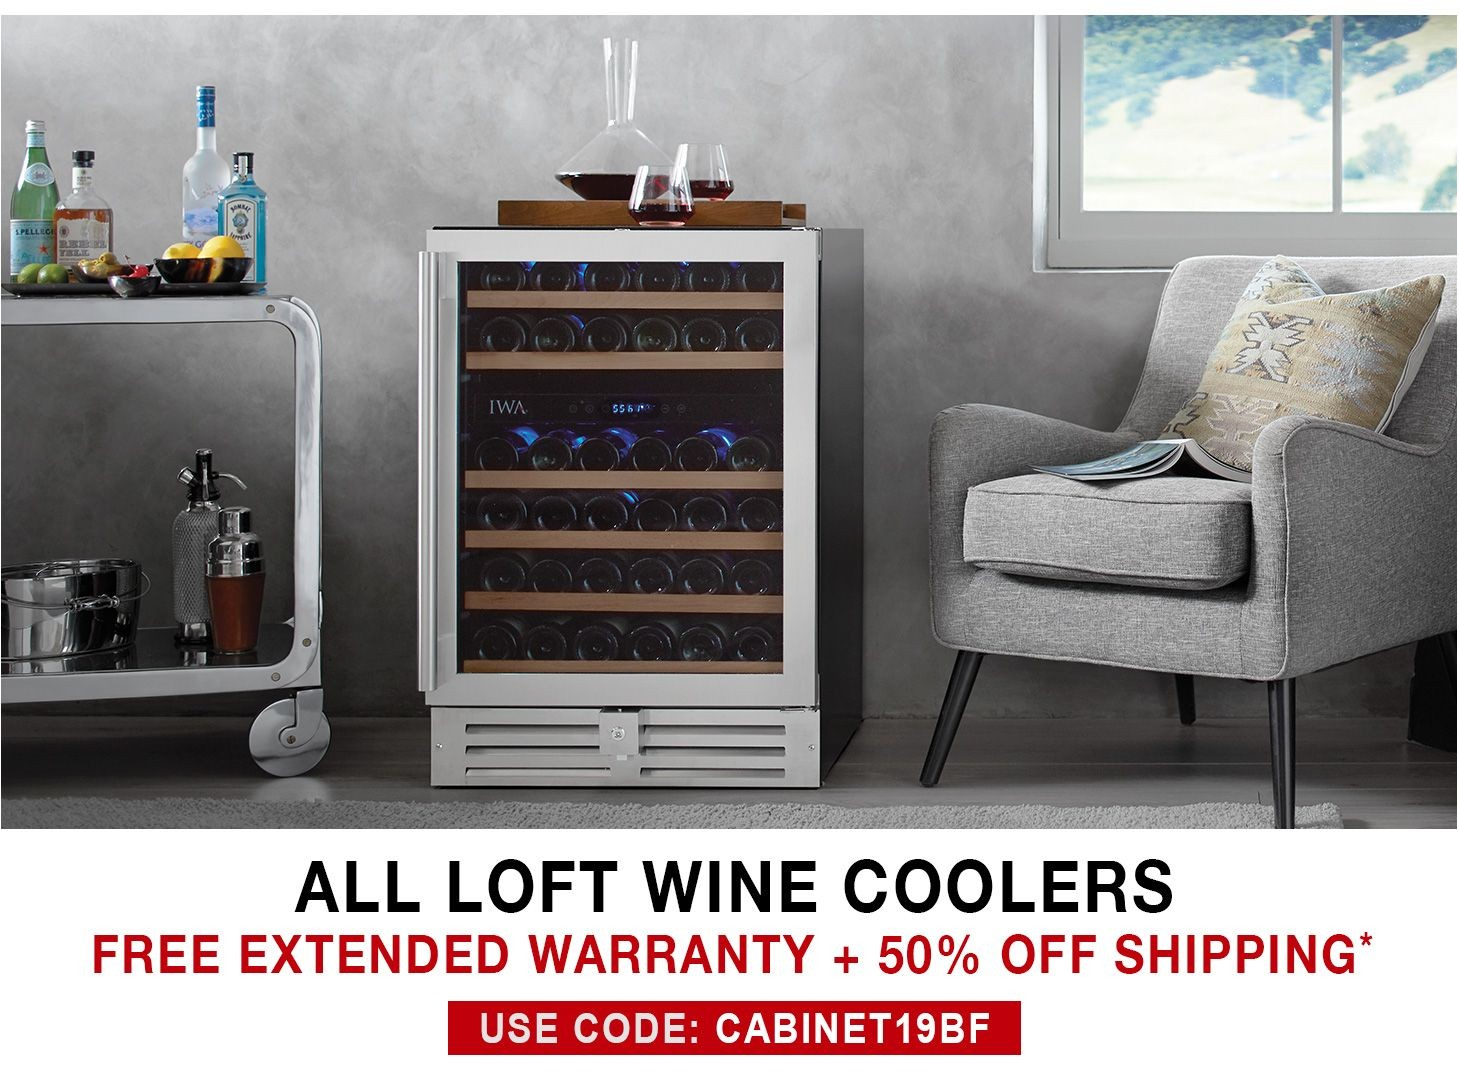 Loft Wine Coolers - Free 3 Year Extended Warranty + 50% Off Shipping - Use Code CABINET19BF